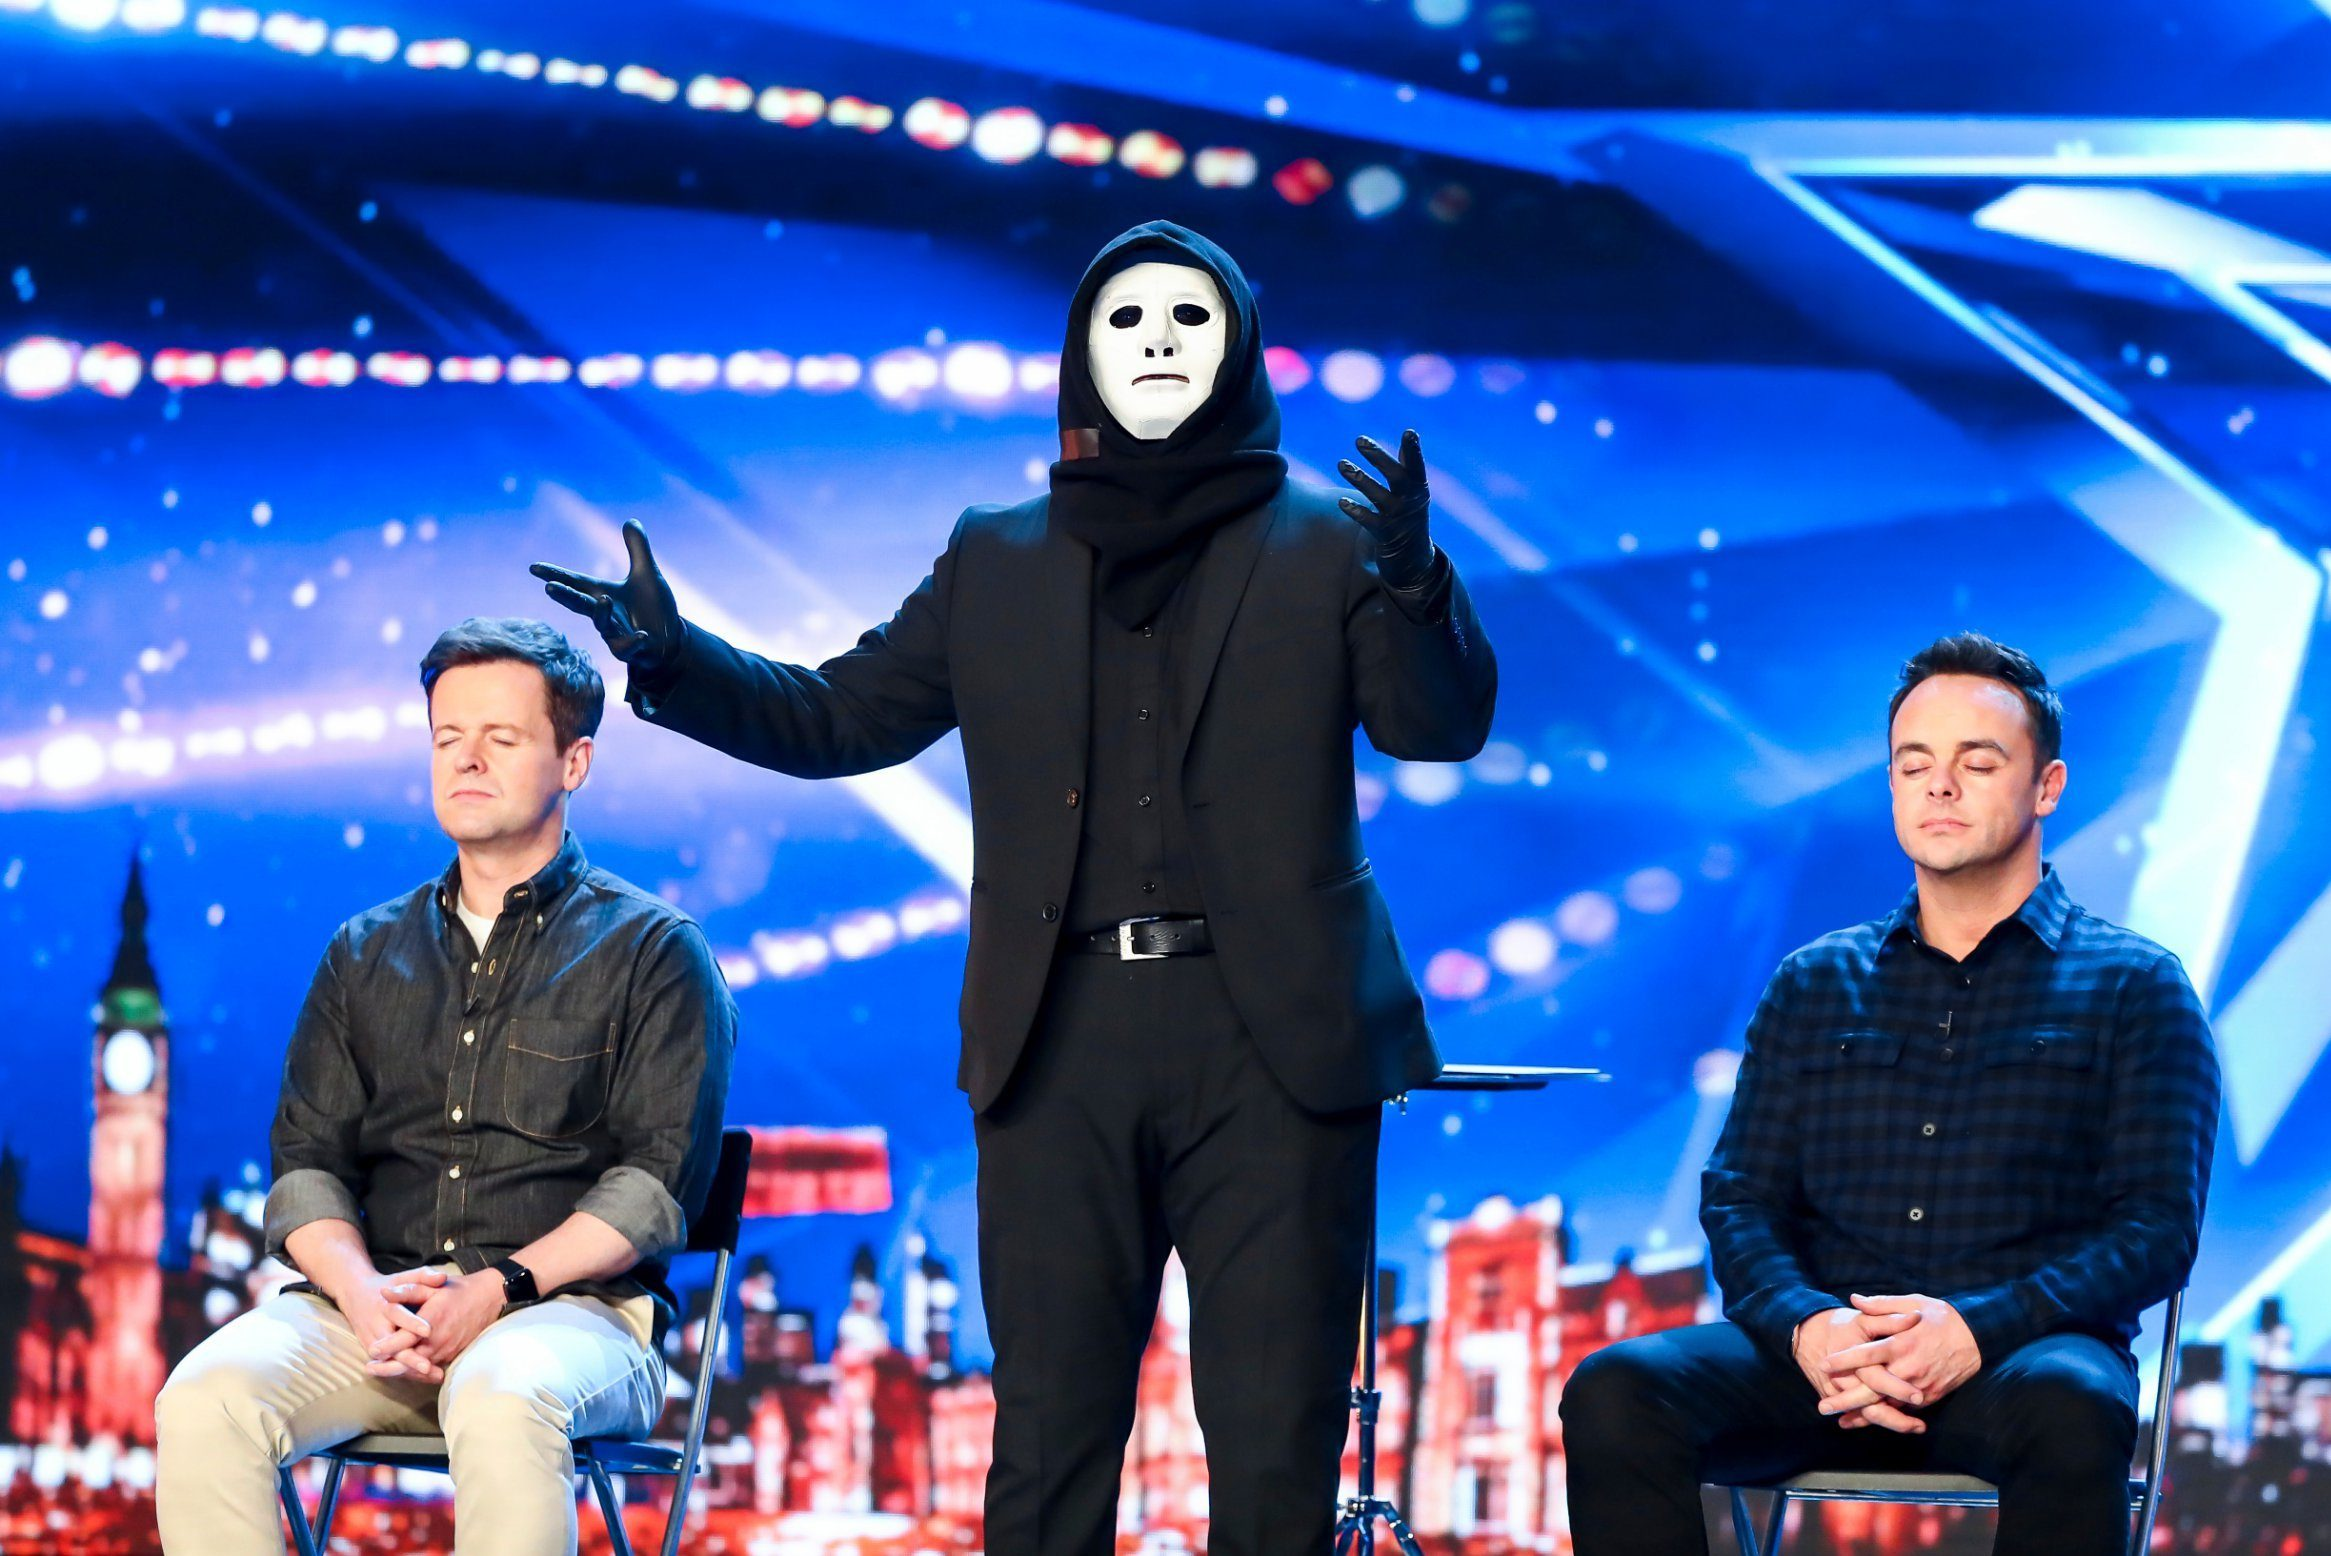 STRICT EMBARGO - NO USE BEFORE 00:01 SATURDAY 13 APRIL 2019 - Editorial use only. No book publishing. Mandatory Credit: Photo by Dymond/Thames/Syco/REX (10201923aa) The Masked Magician 'Britain's Got Talent' TV Show, Series 13, Episode 2, UK - 13 Apr 2019